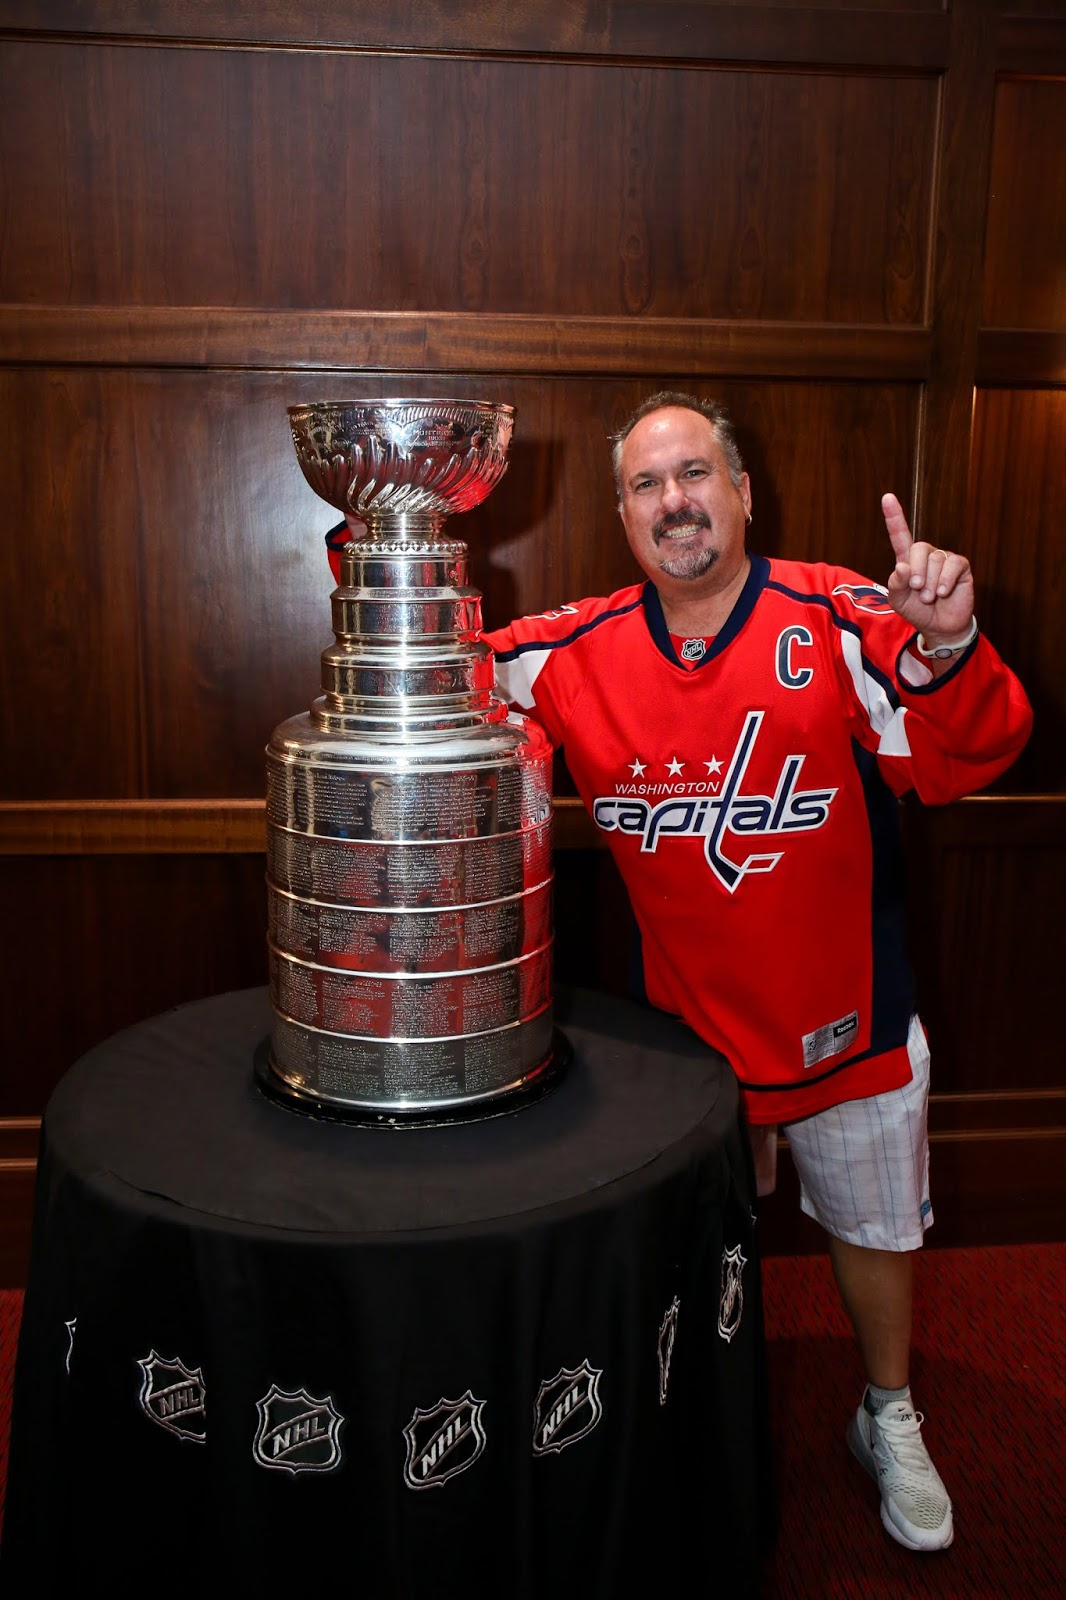 I KISSED THE STANLEY CUP!